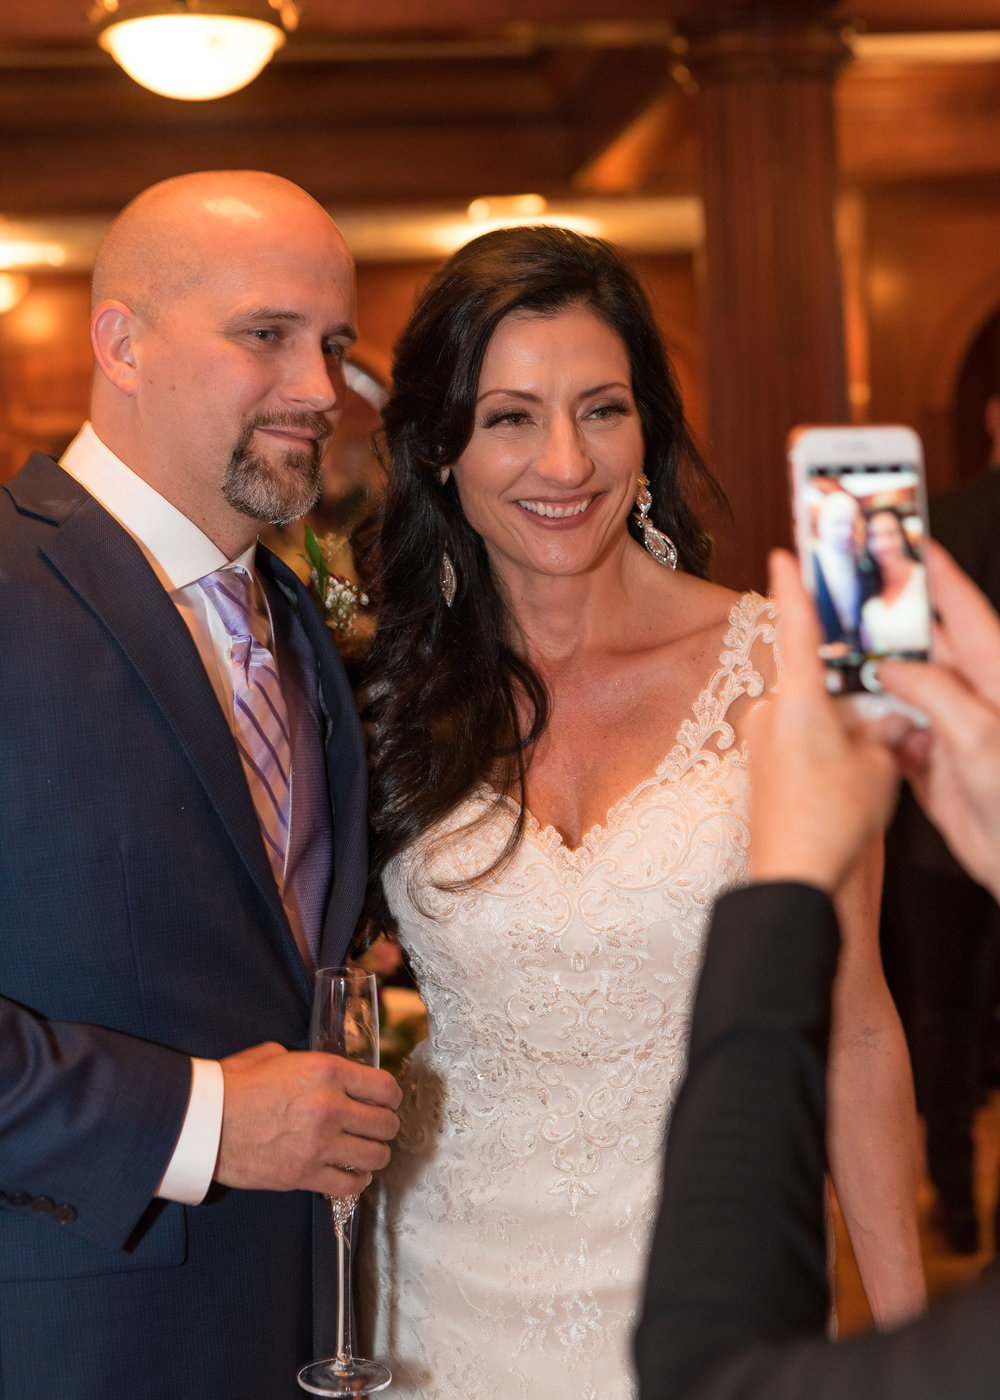 Bride and Groom Pose for Smartphone Photo